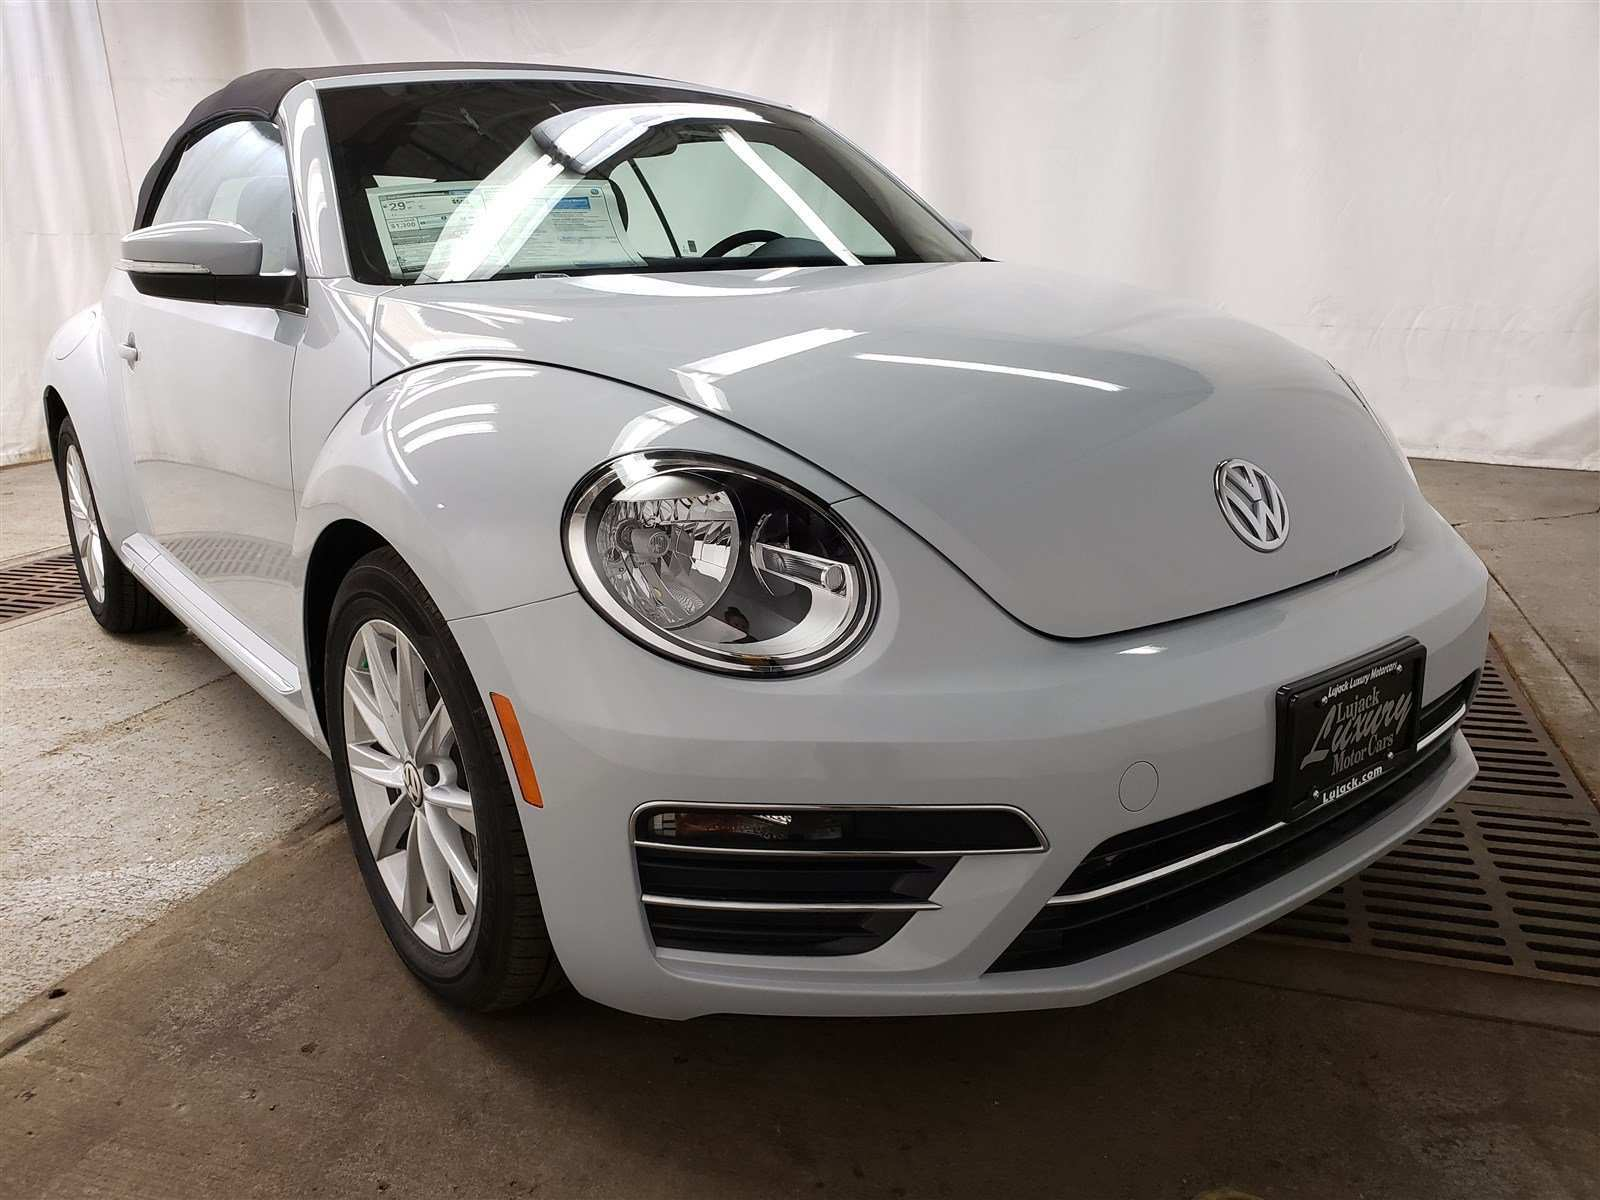 68 The Best 2019 Volkswagen Beetle Convertible Redesign And Review